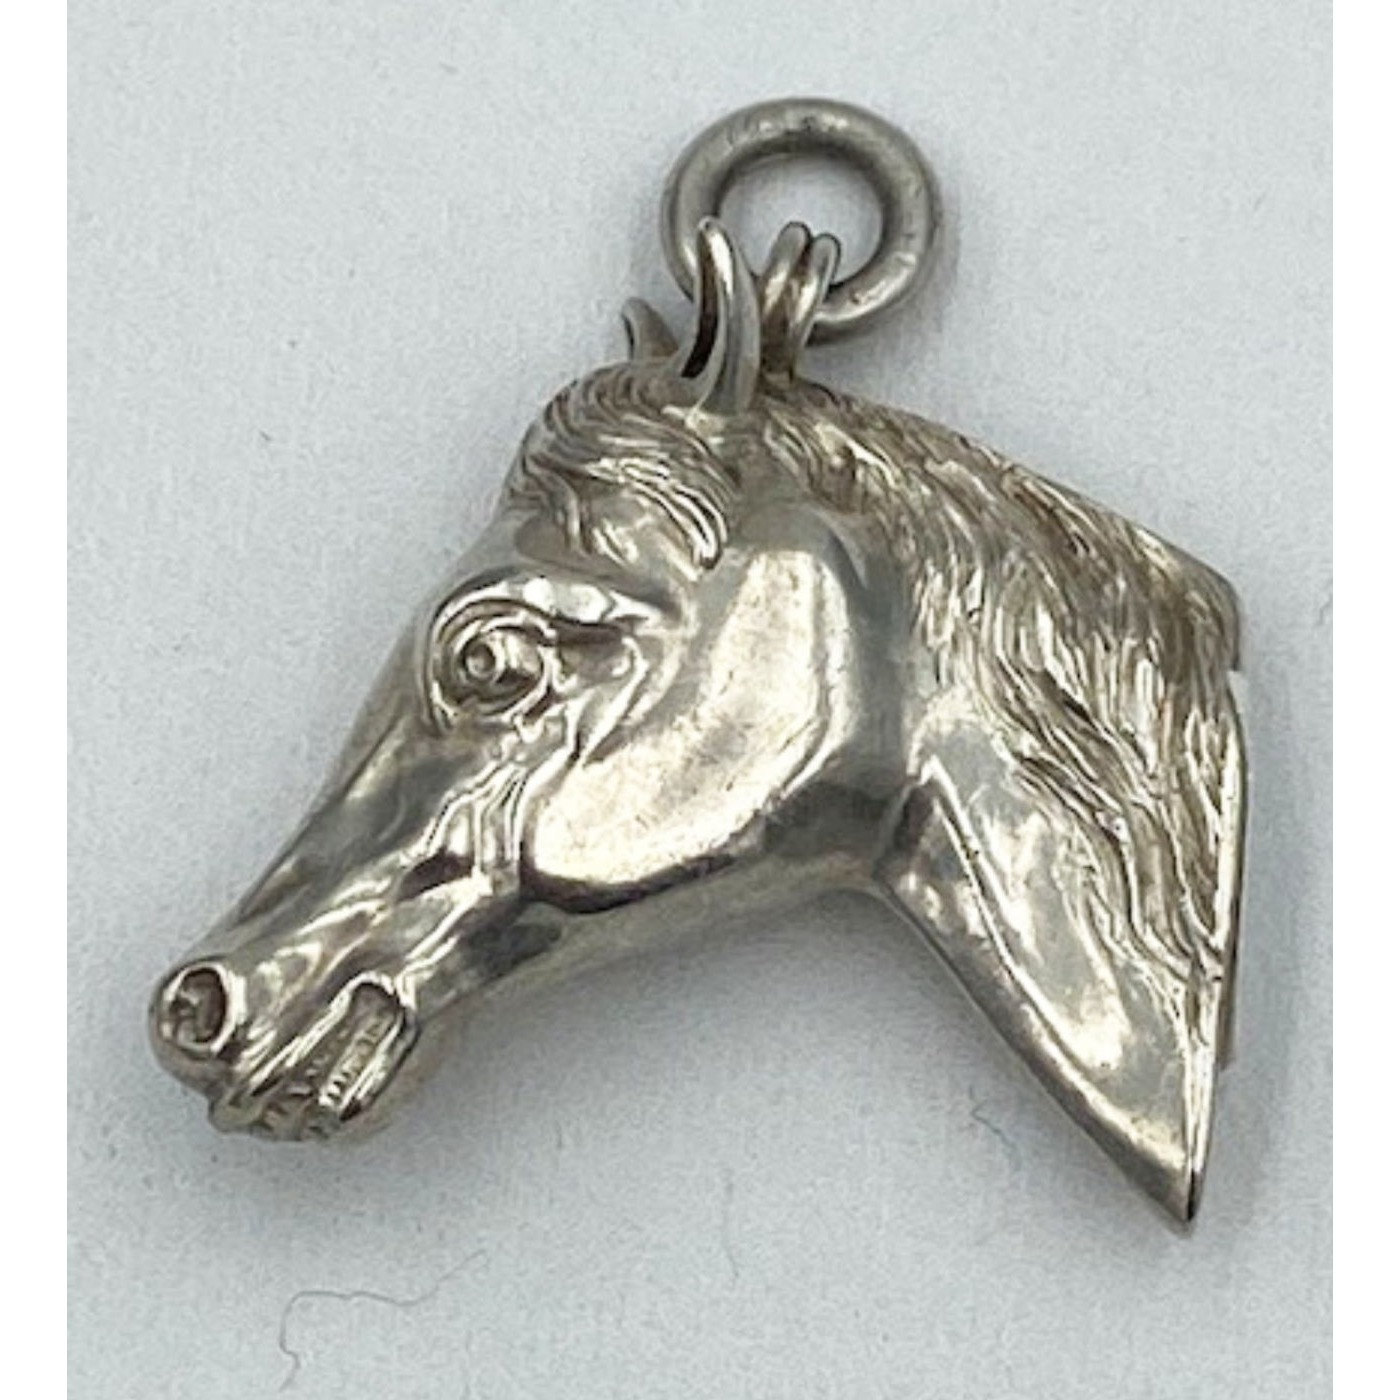 Incredible Full Body Horse Head English Silver Watch Fob Pendant